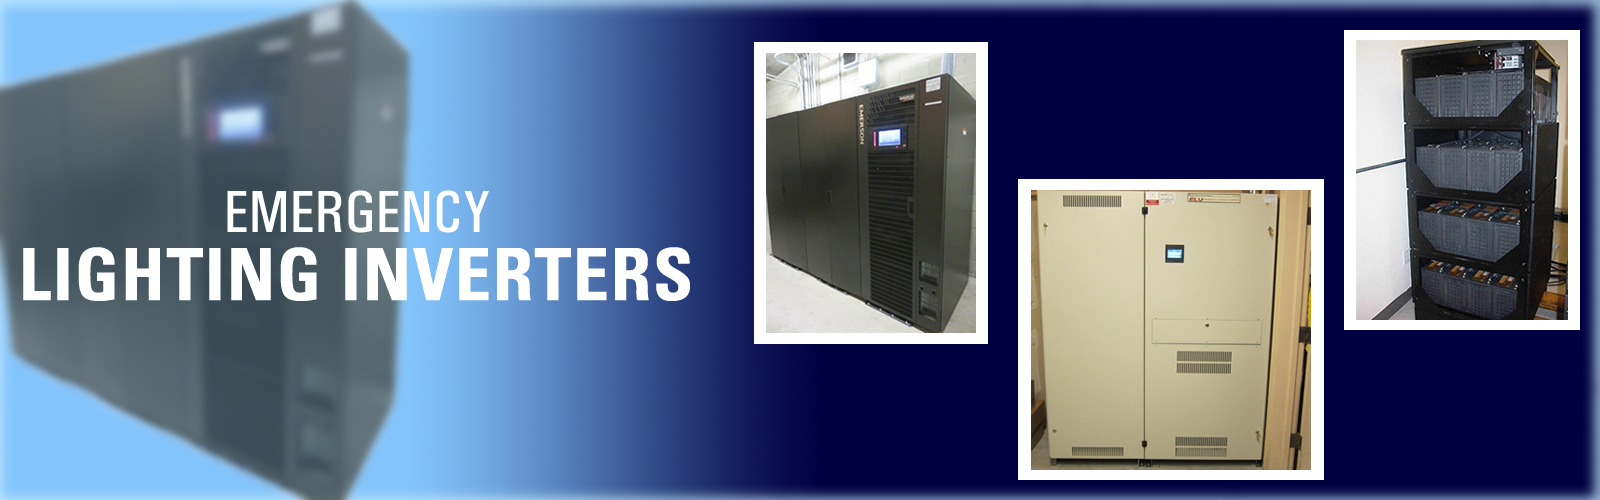 Emergency Lighting Inverters